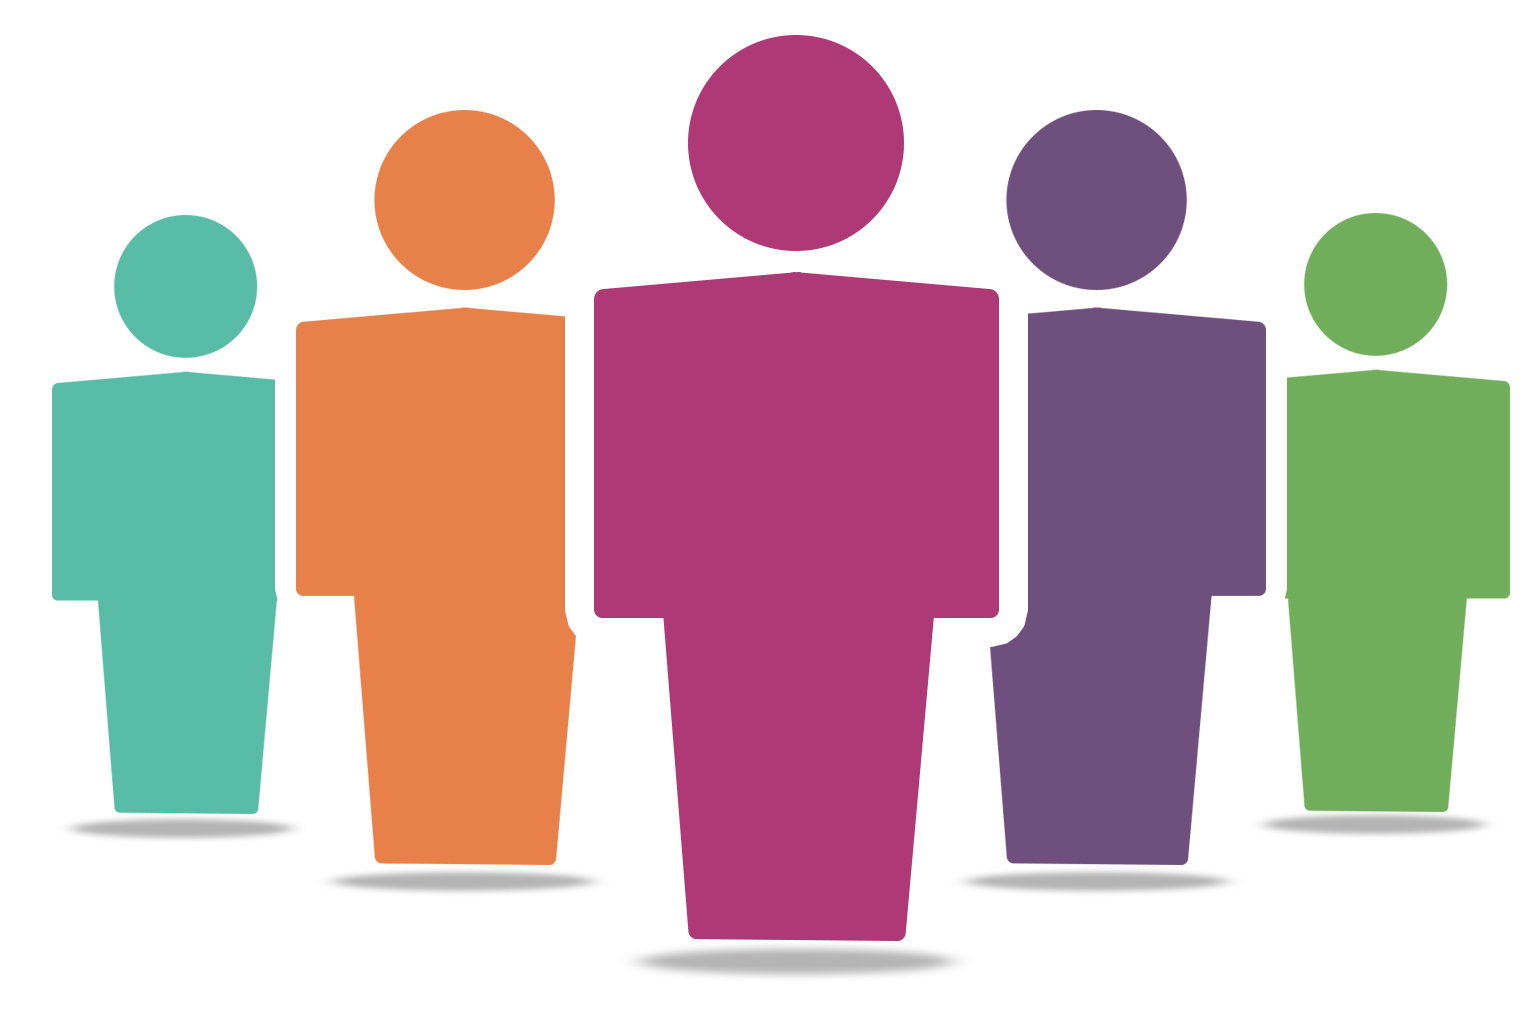 Description Group People Icon image #1697